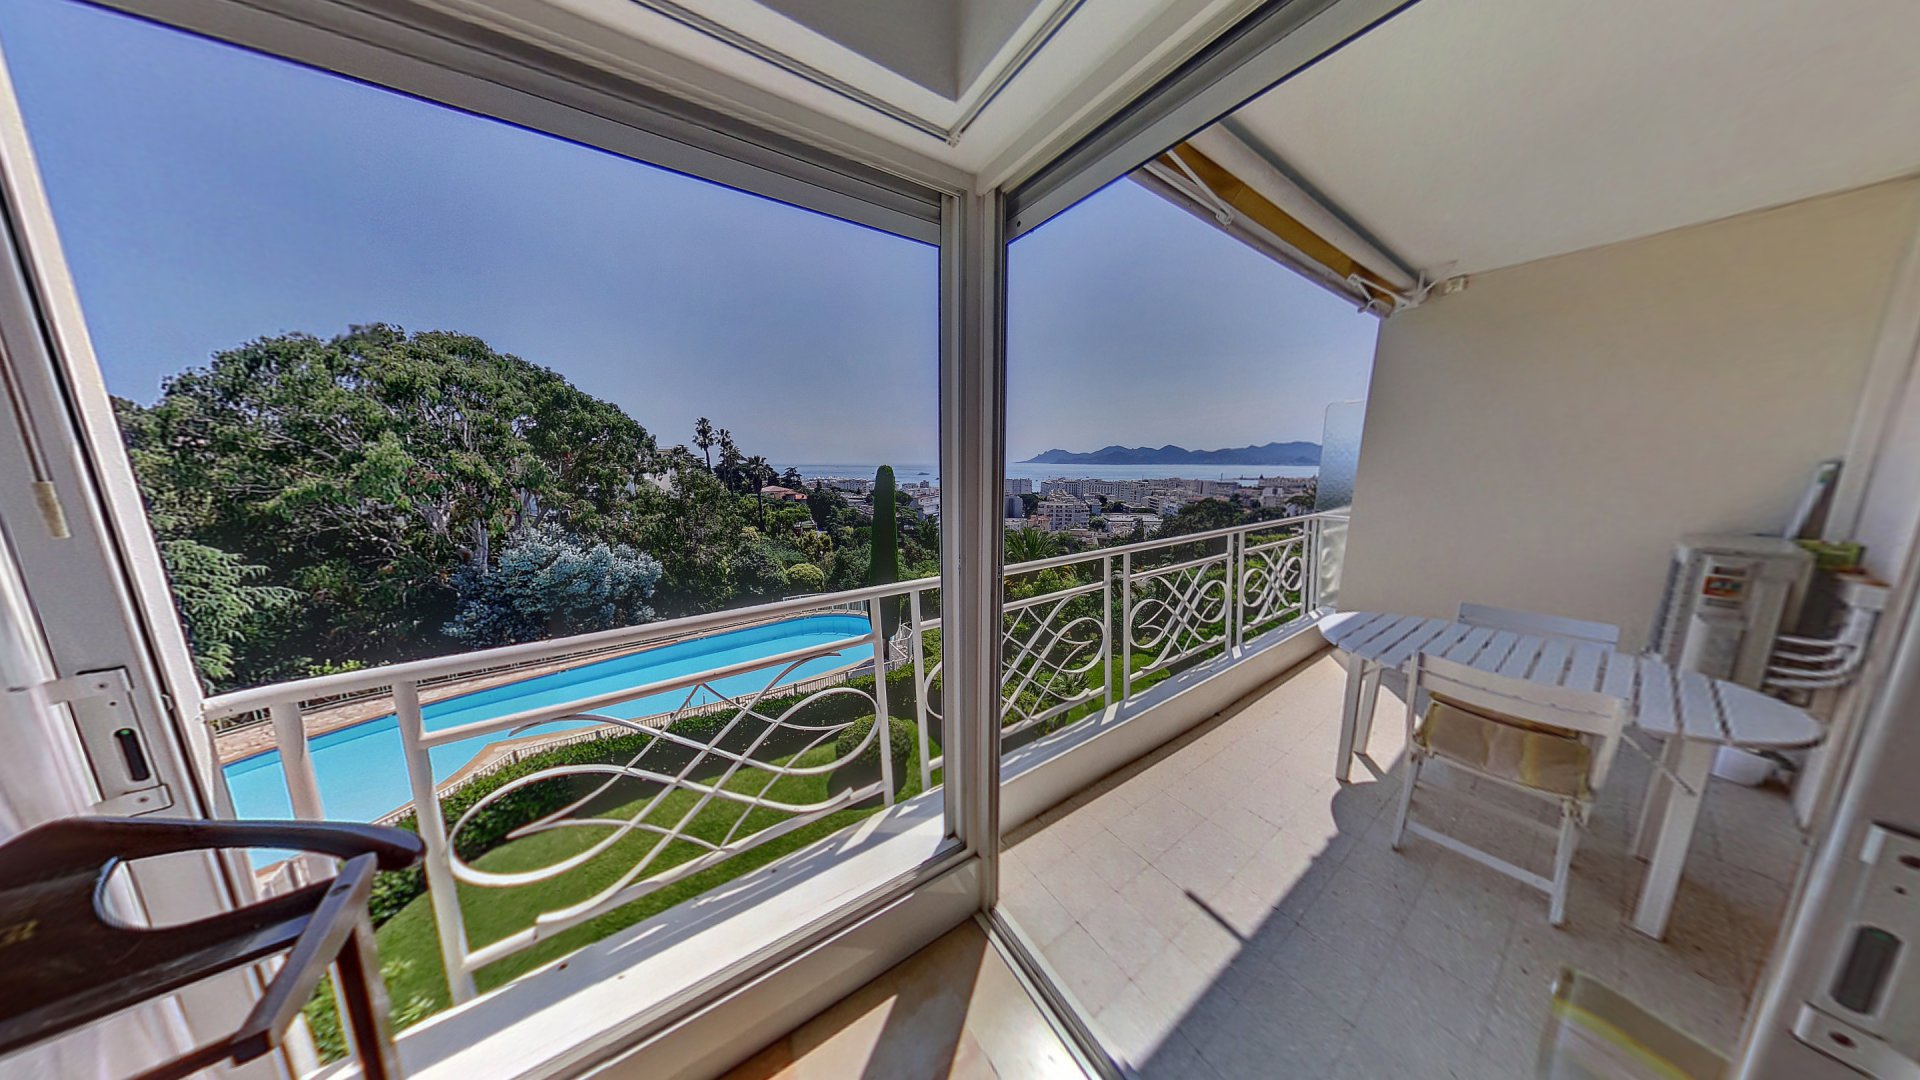 Cannes property for sale with swimming pool and sea view